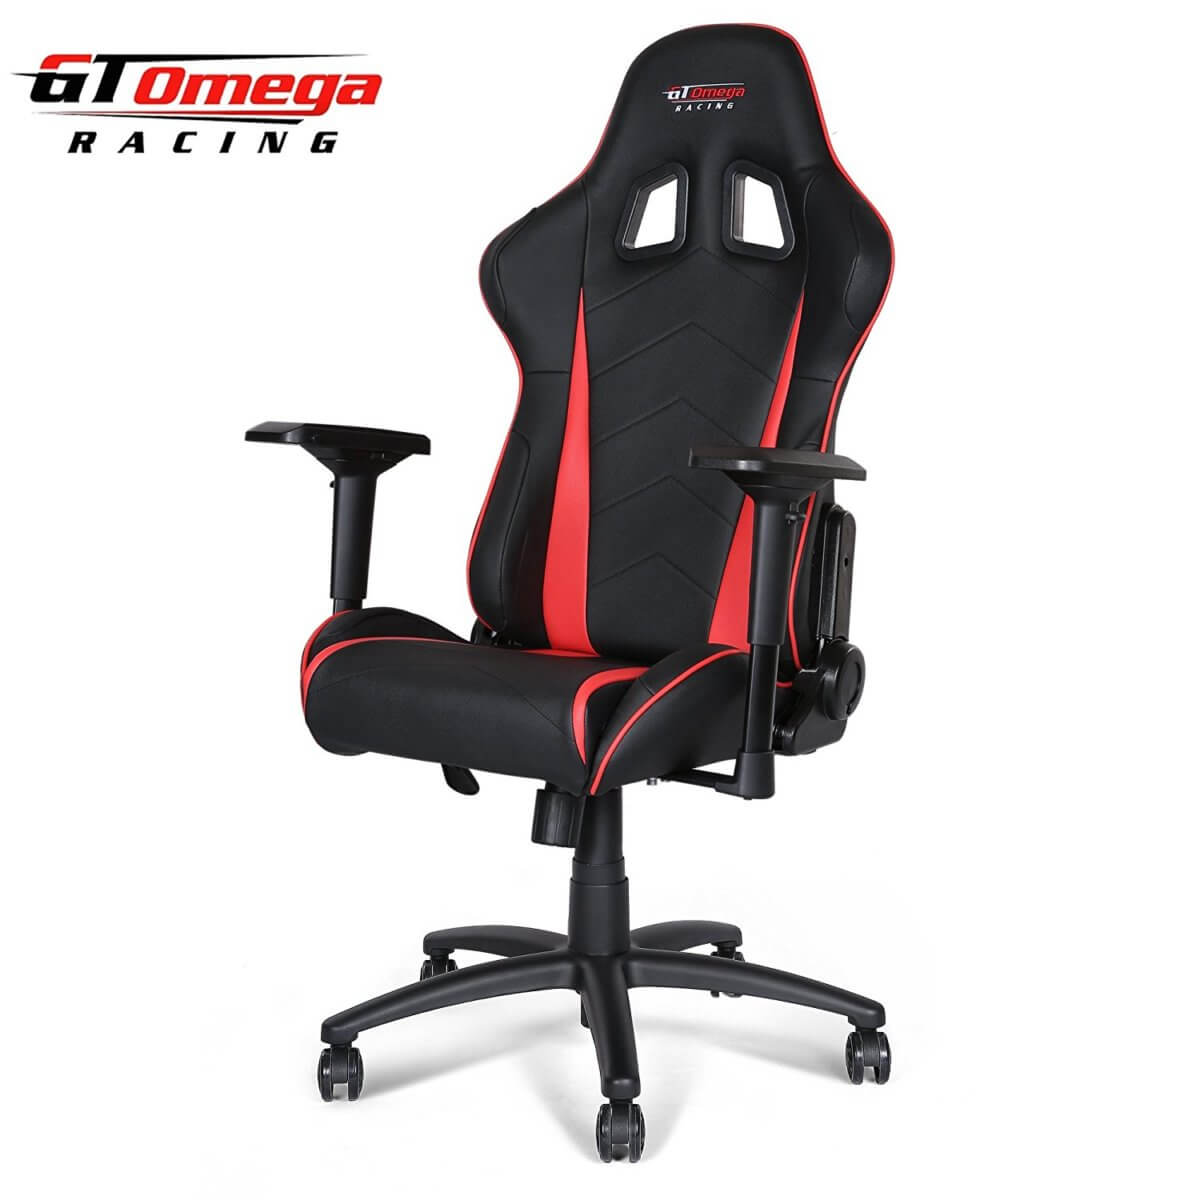 GT Omega Pro Racing